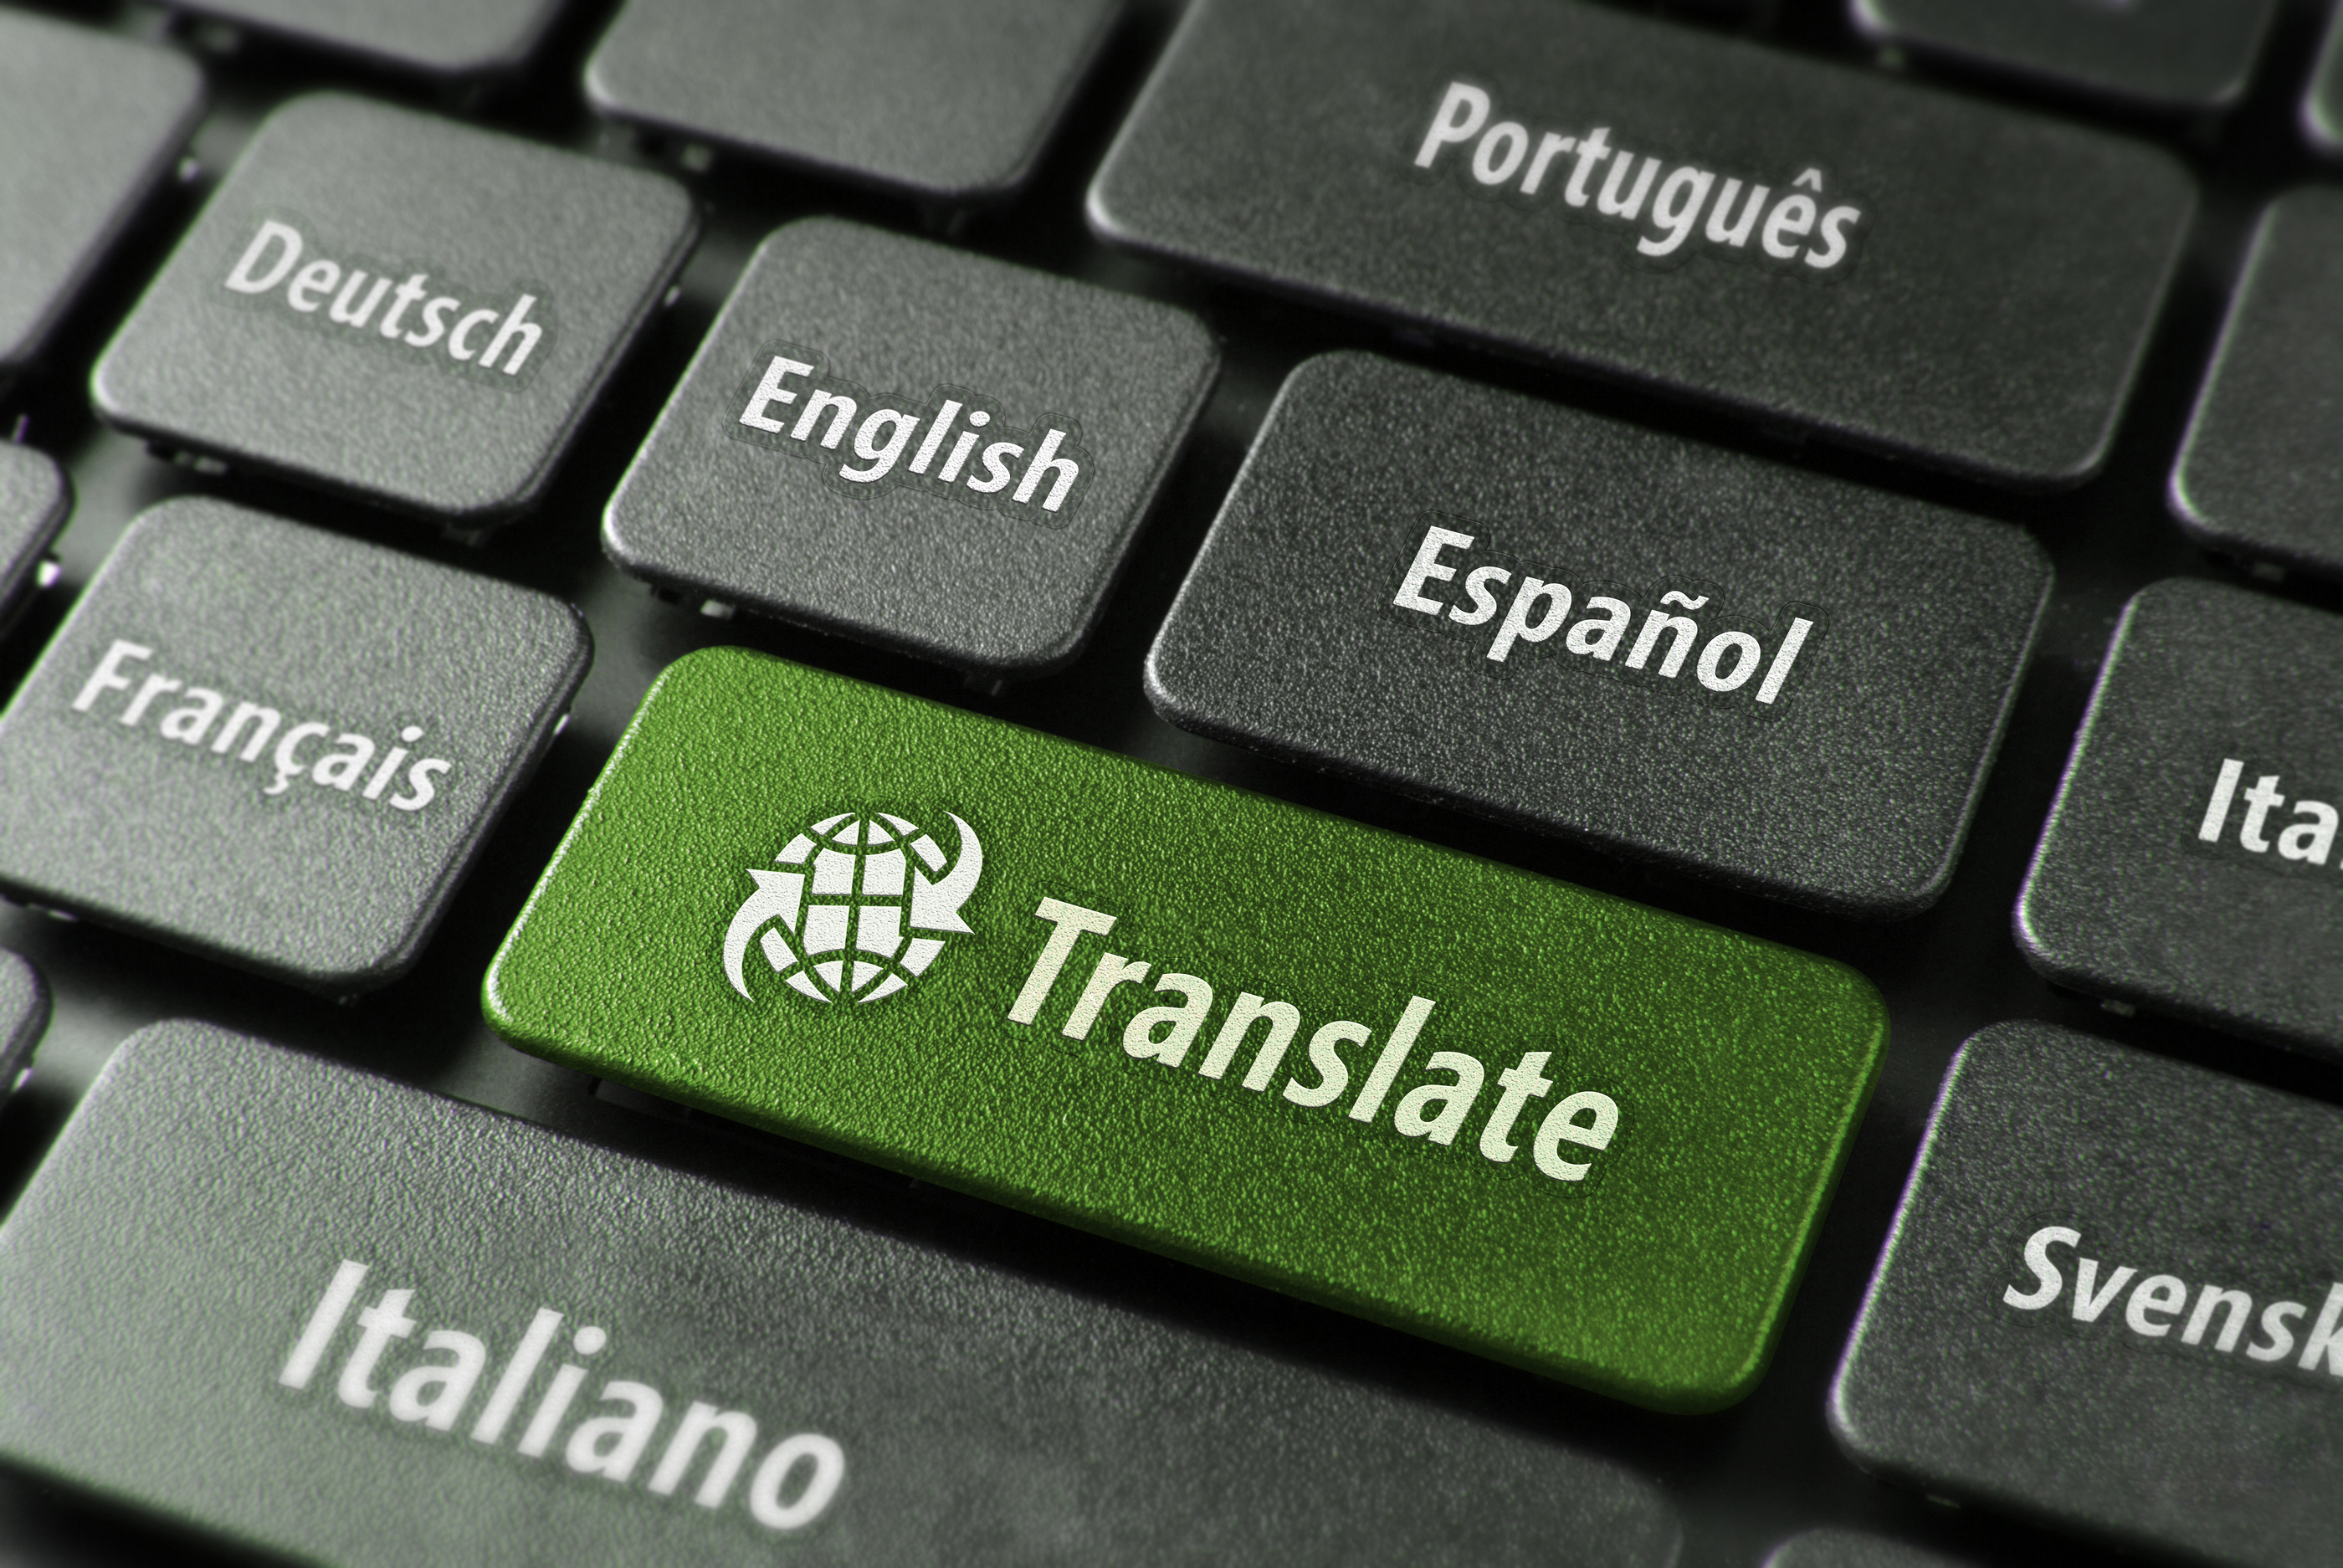 translate up to 500 words from English to Dutch